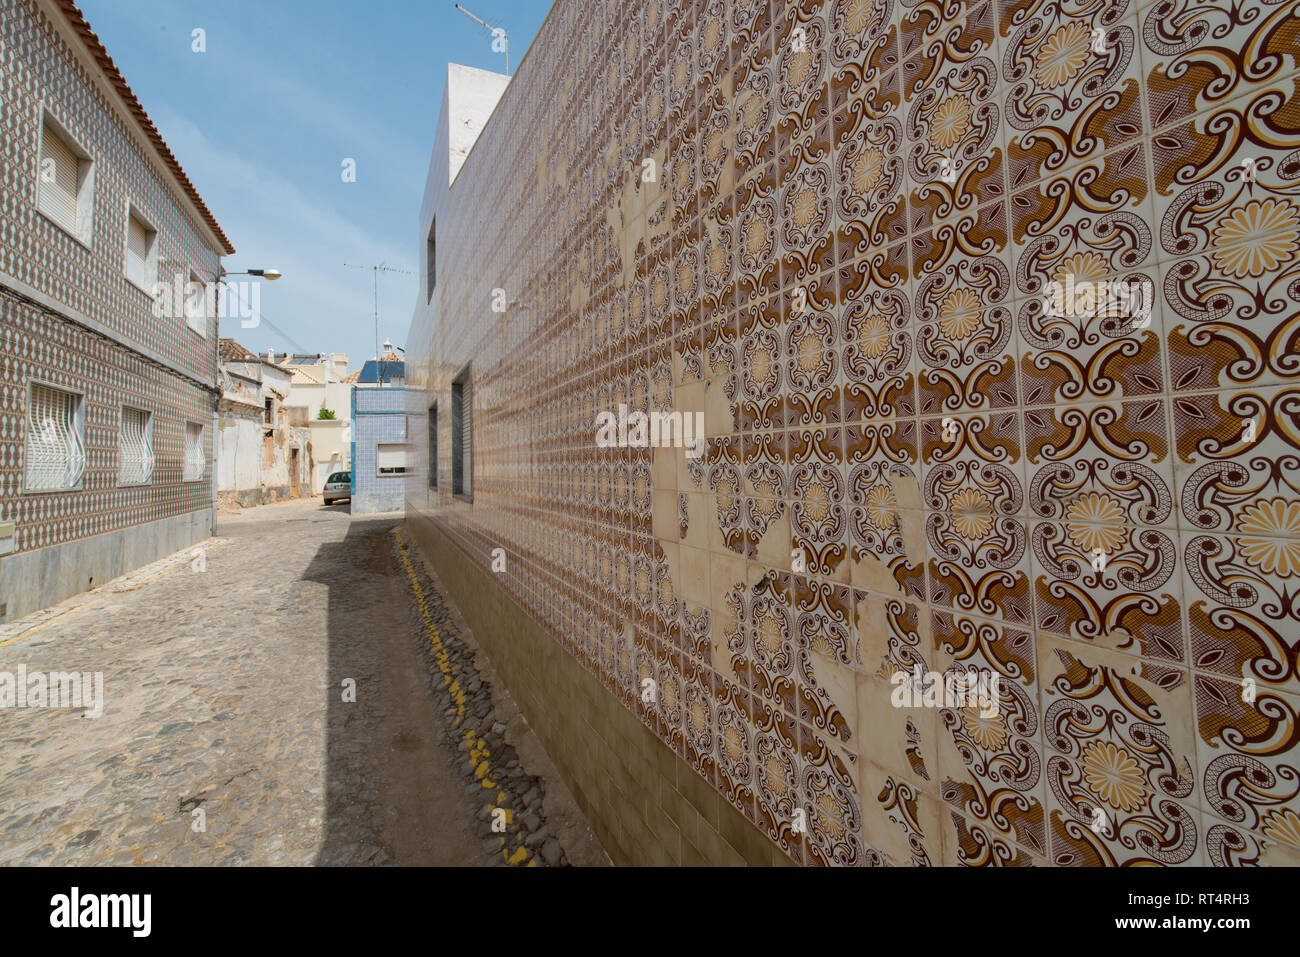 Azulejos Portuguese exterior wall tiles in Tavira, Portugal. Traditional decorative azulejos wall ceramic tiles - Stock Image